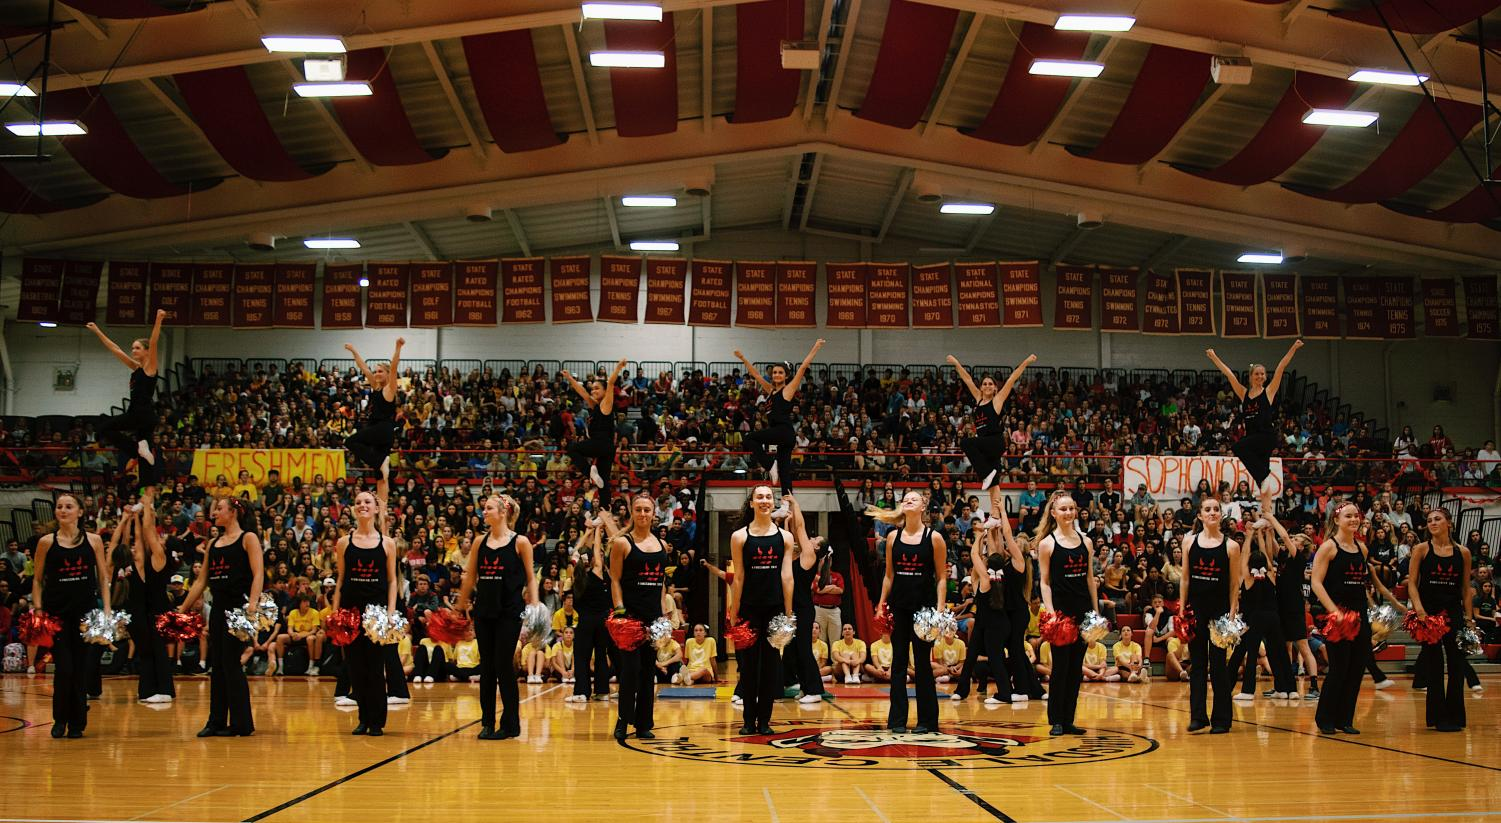 On+Friday%2C+Sept.+20%2C+the+varsity+pommers+danced+during+the+homecoming+court+nominations+assembly+to+a+variety+of+songs.++They+did+many+tricks+such+as+turns+and+a+kick+line.%0A